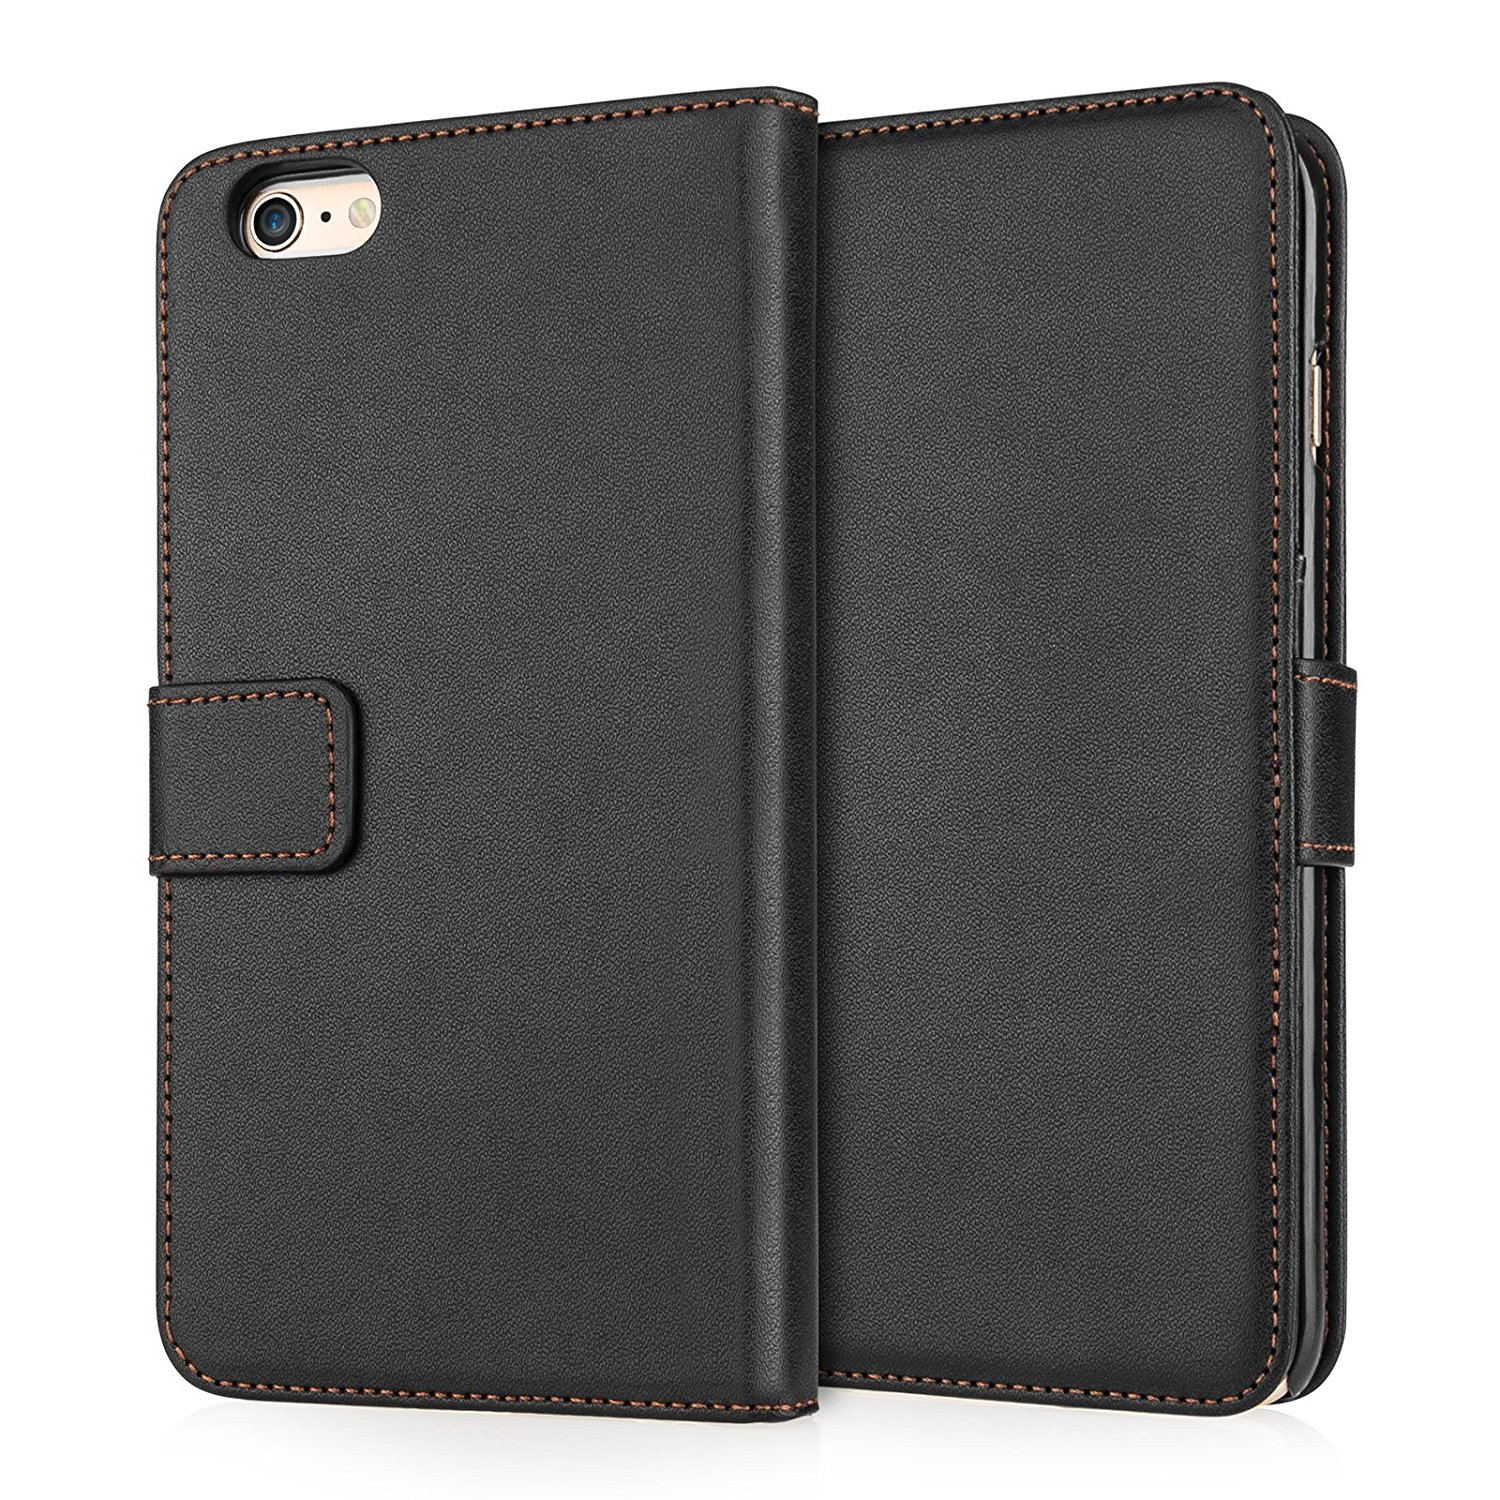 Caseflex Θήκη - Πορτοφόλι iPhone 6S Plus / 6 Plus - Black (AP-GA02-Z934)